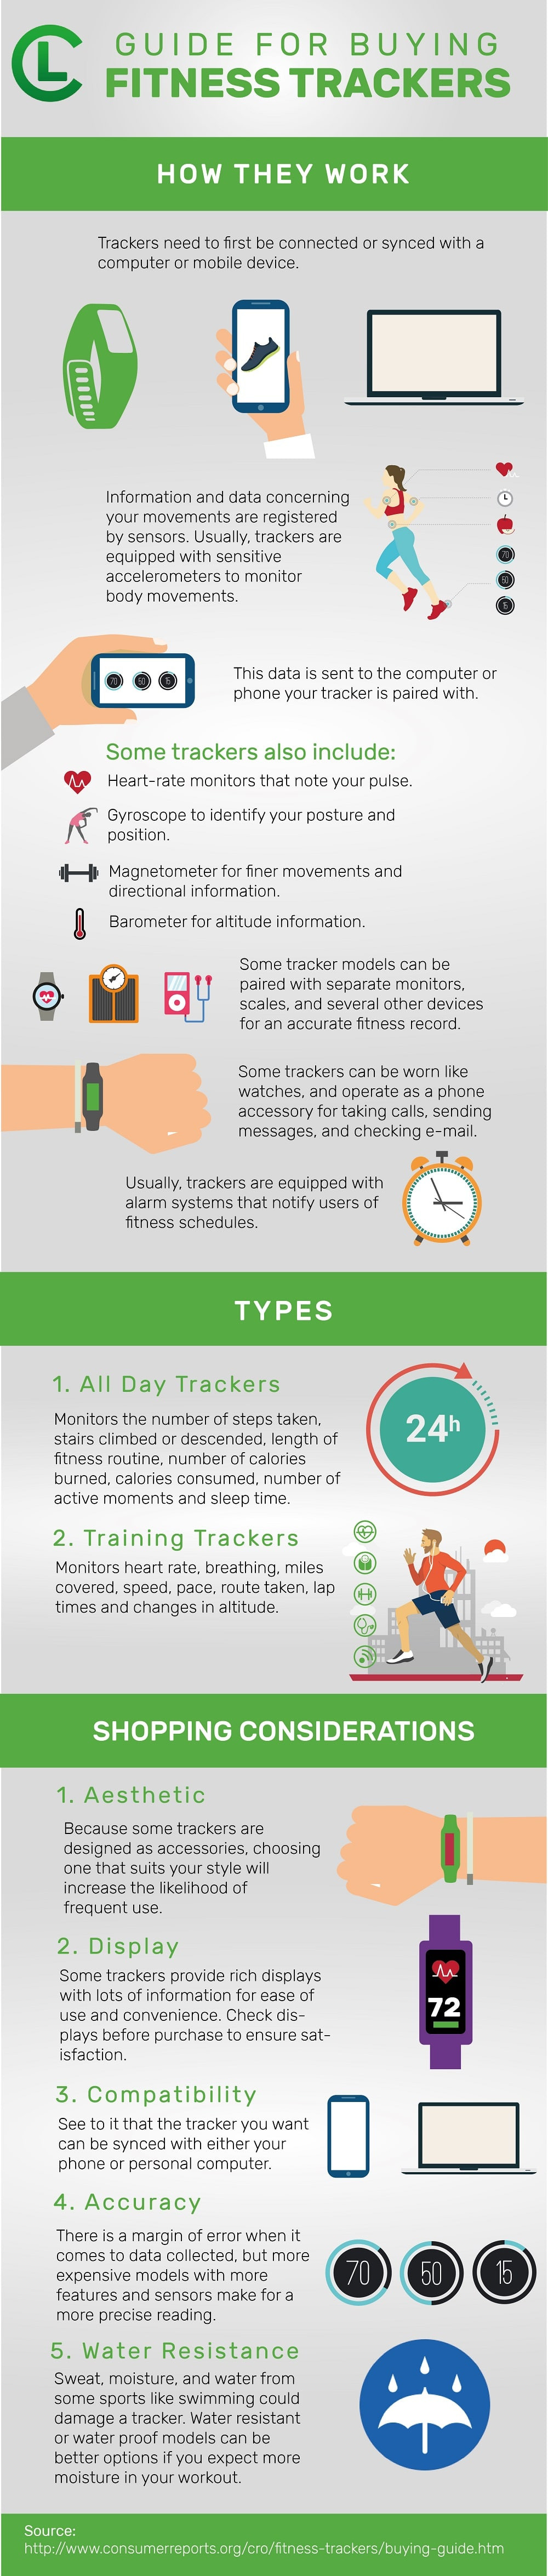 Guide For Buying Fitness Trackers Infographic